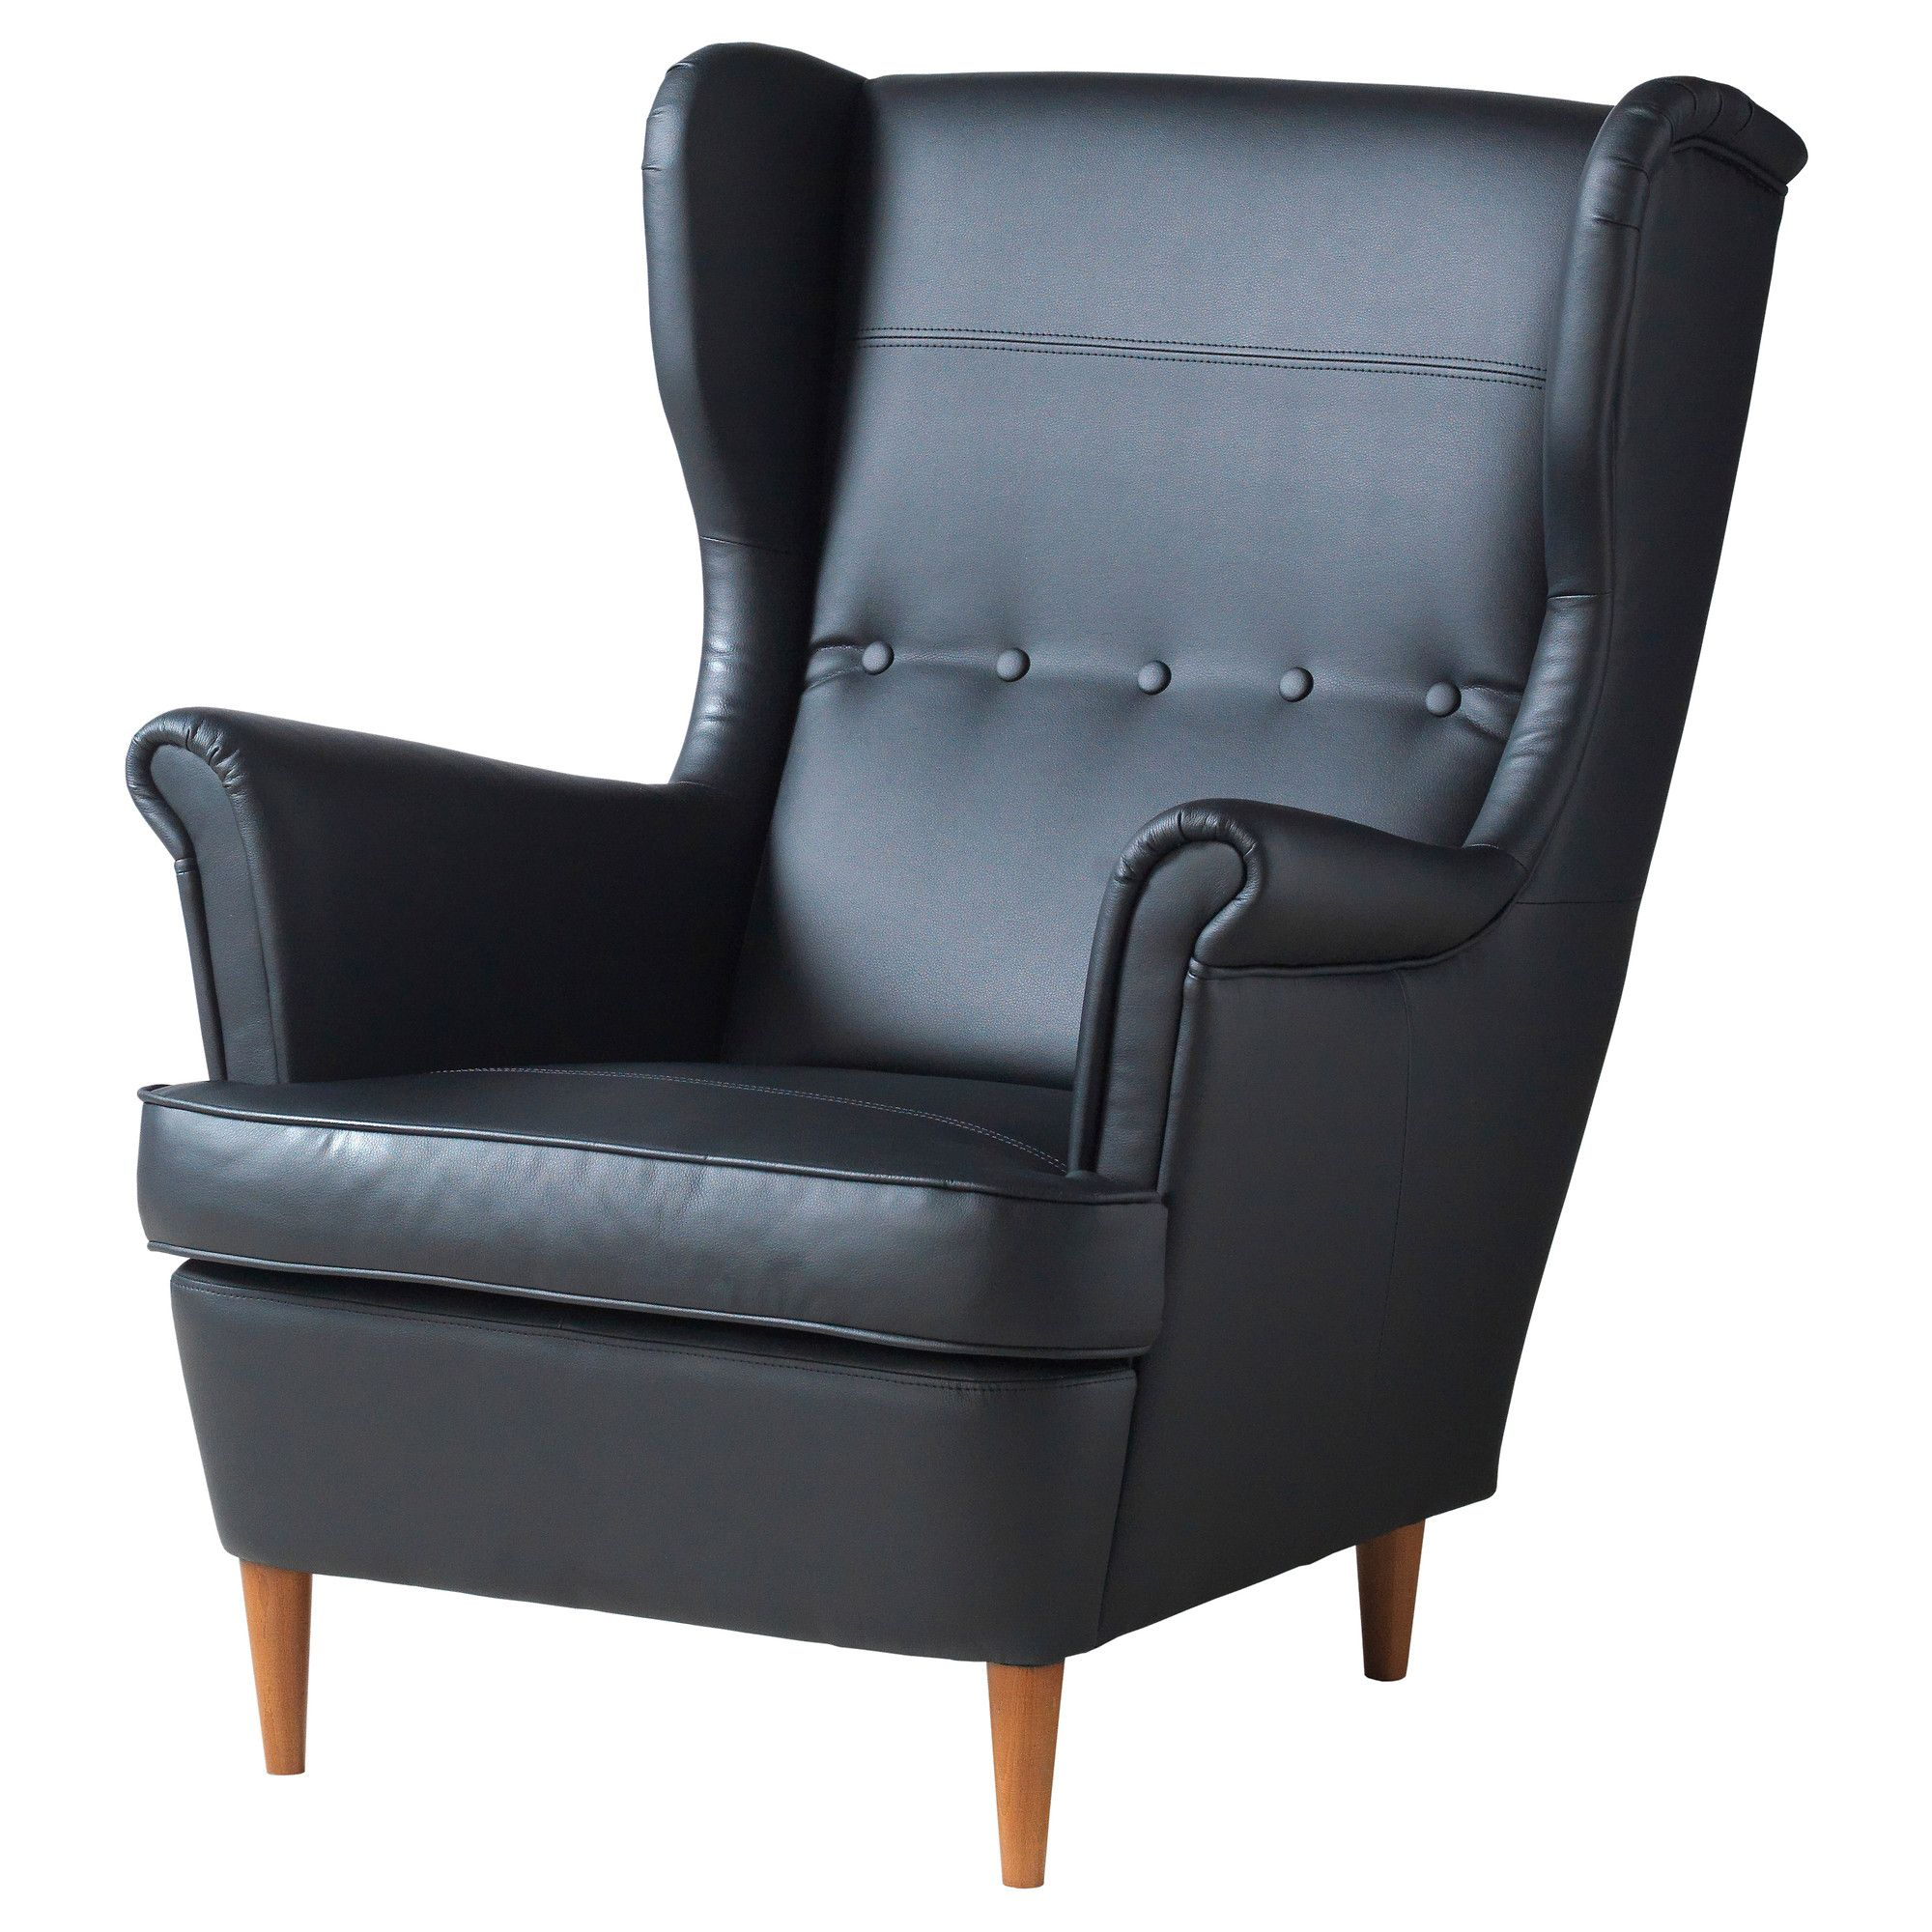 Modern Wingback Chair Canada Pottery Barn Anywhere Cover Instructions Strandmon Wing Ikea Decor Do It Yourself